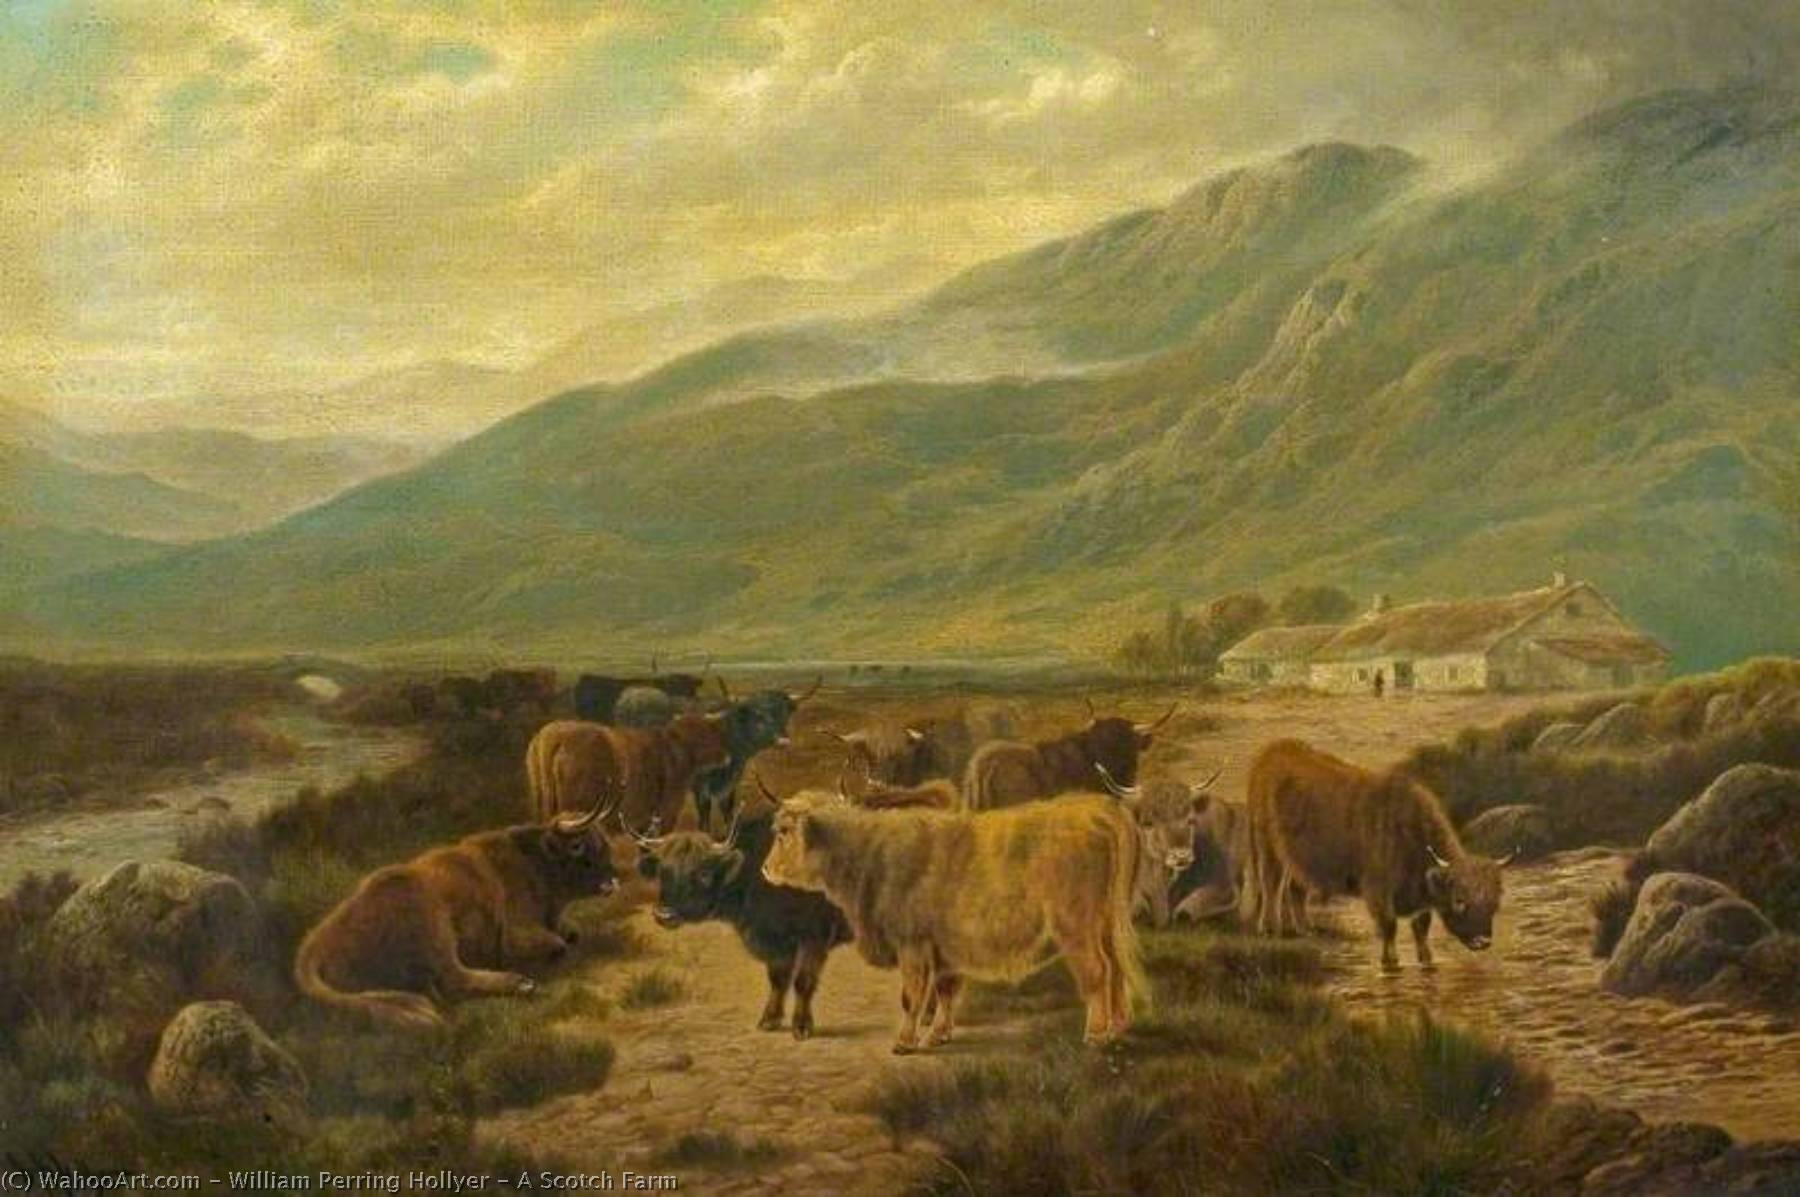 A Scotch Farm by William Perring Hollyer | Famous Paintings Reproductions | WahooArt.com